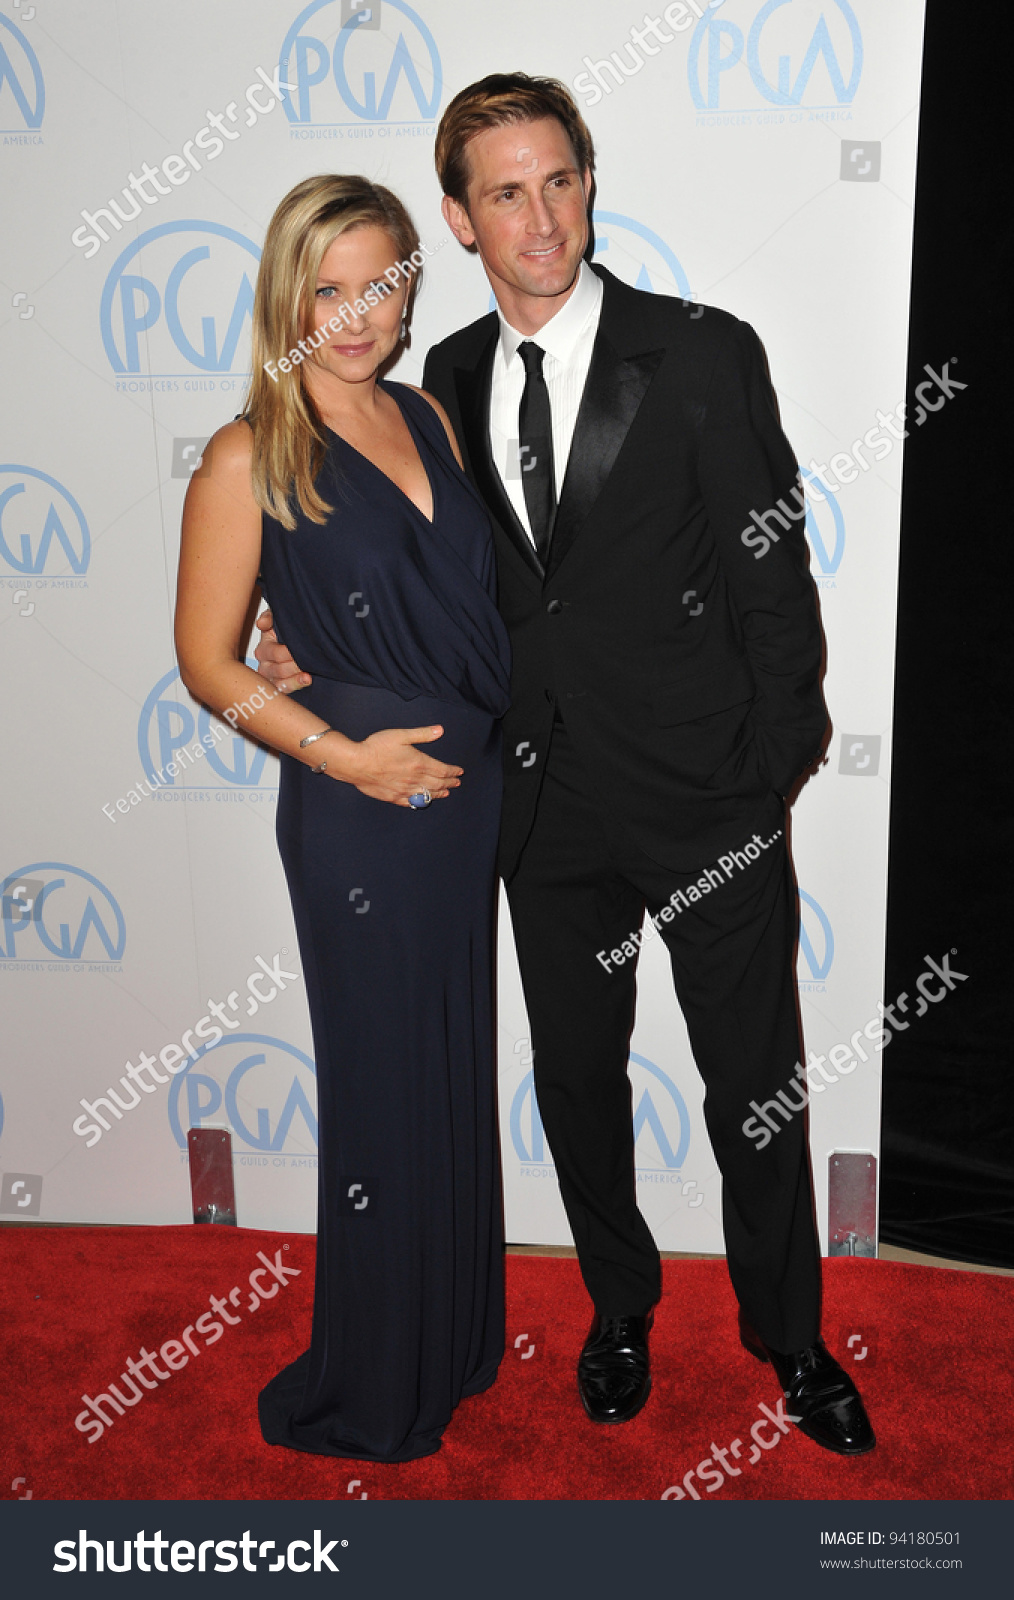 jessica capshaw husband christopher gavigan at the 23rd annual producers guild awards at the. Black Bedroom Furniture Sets. Home Design Ideas